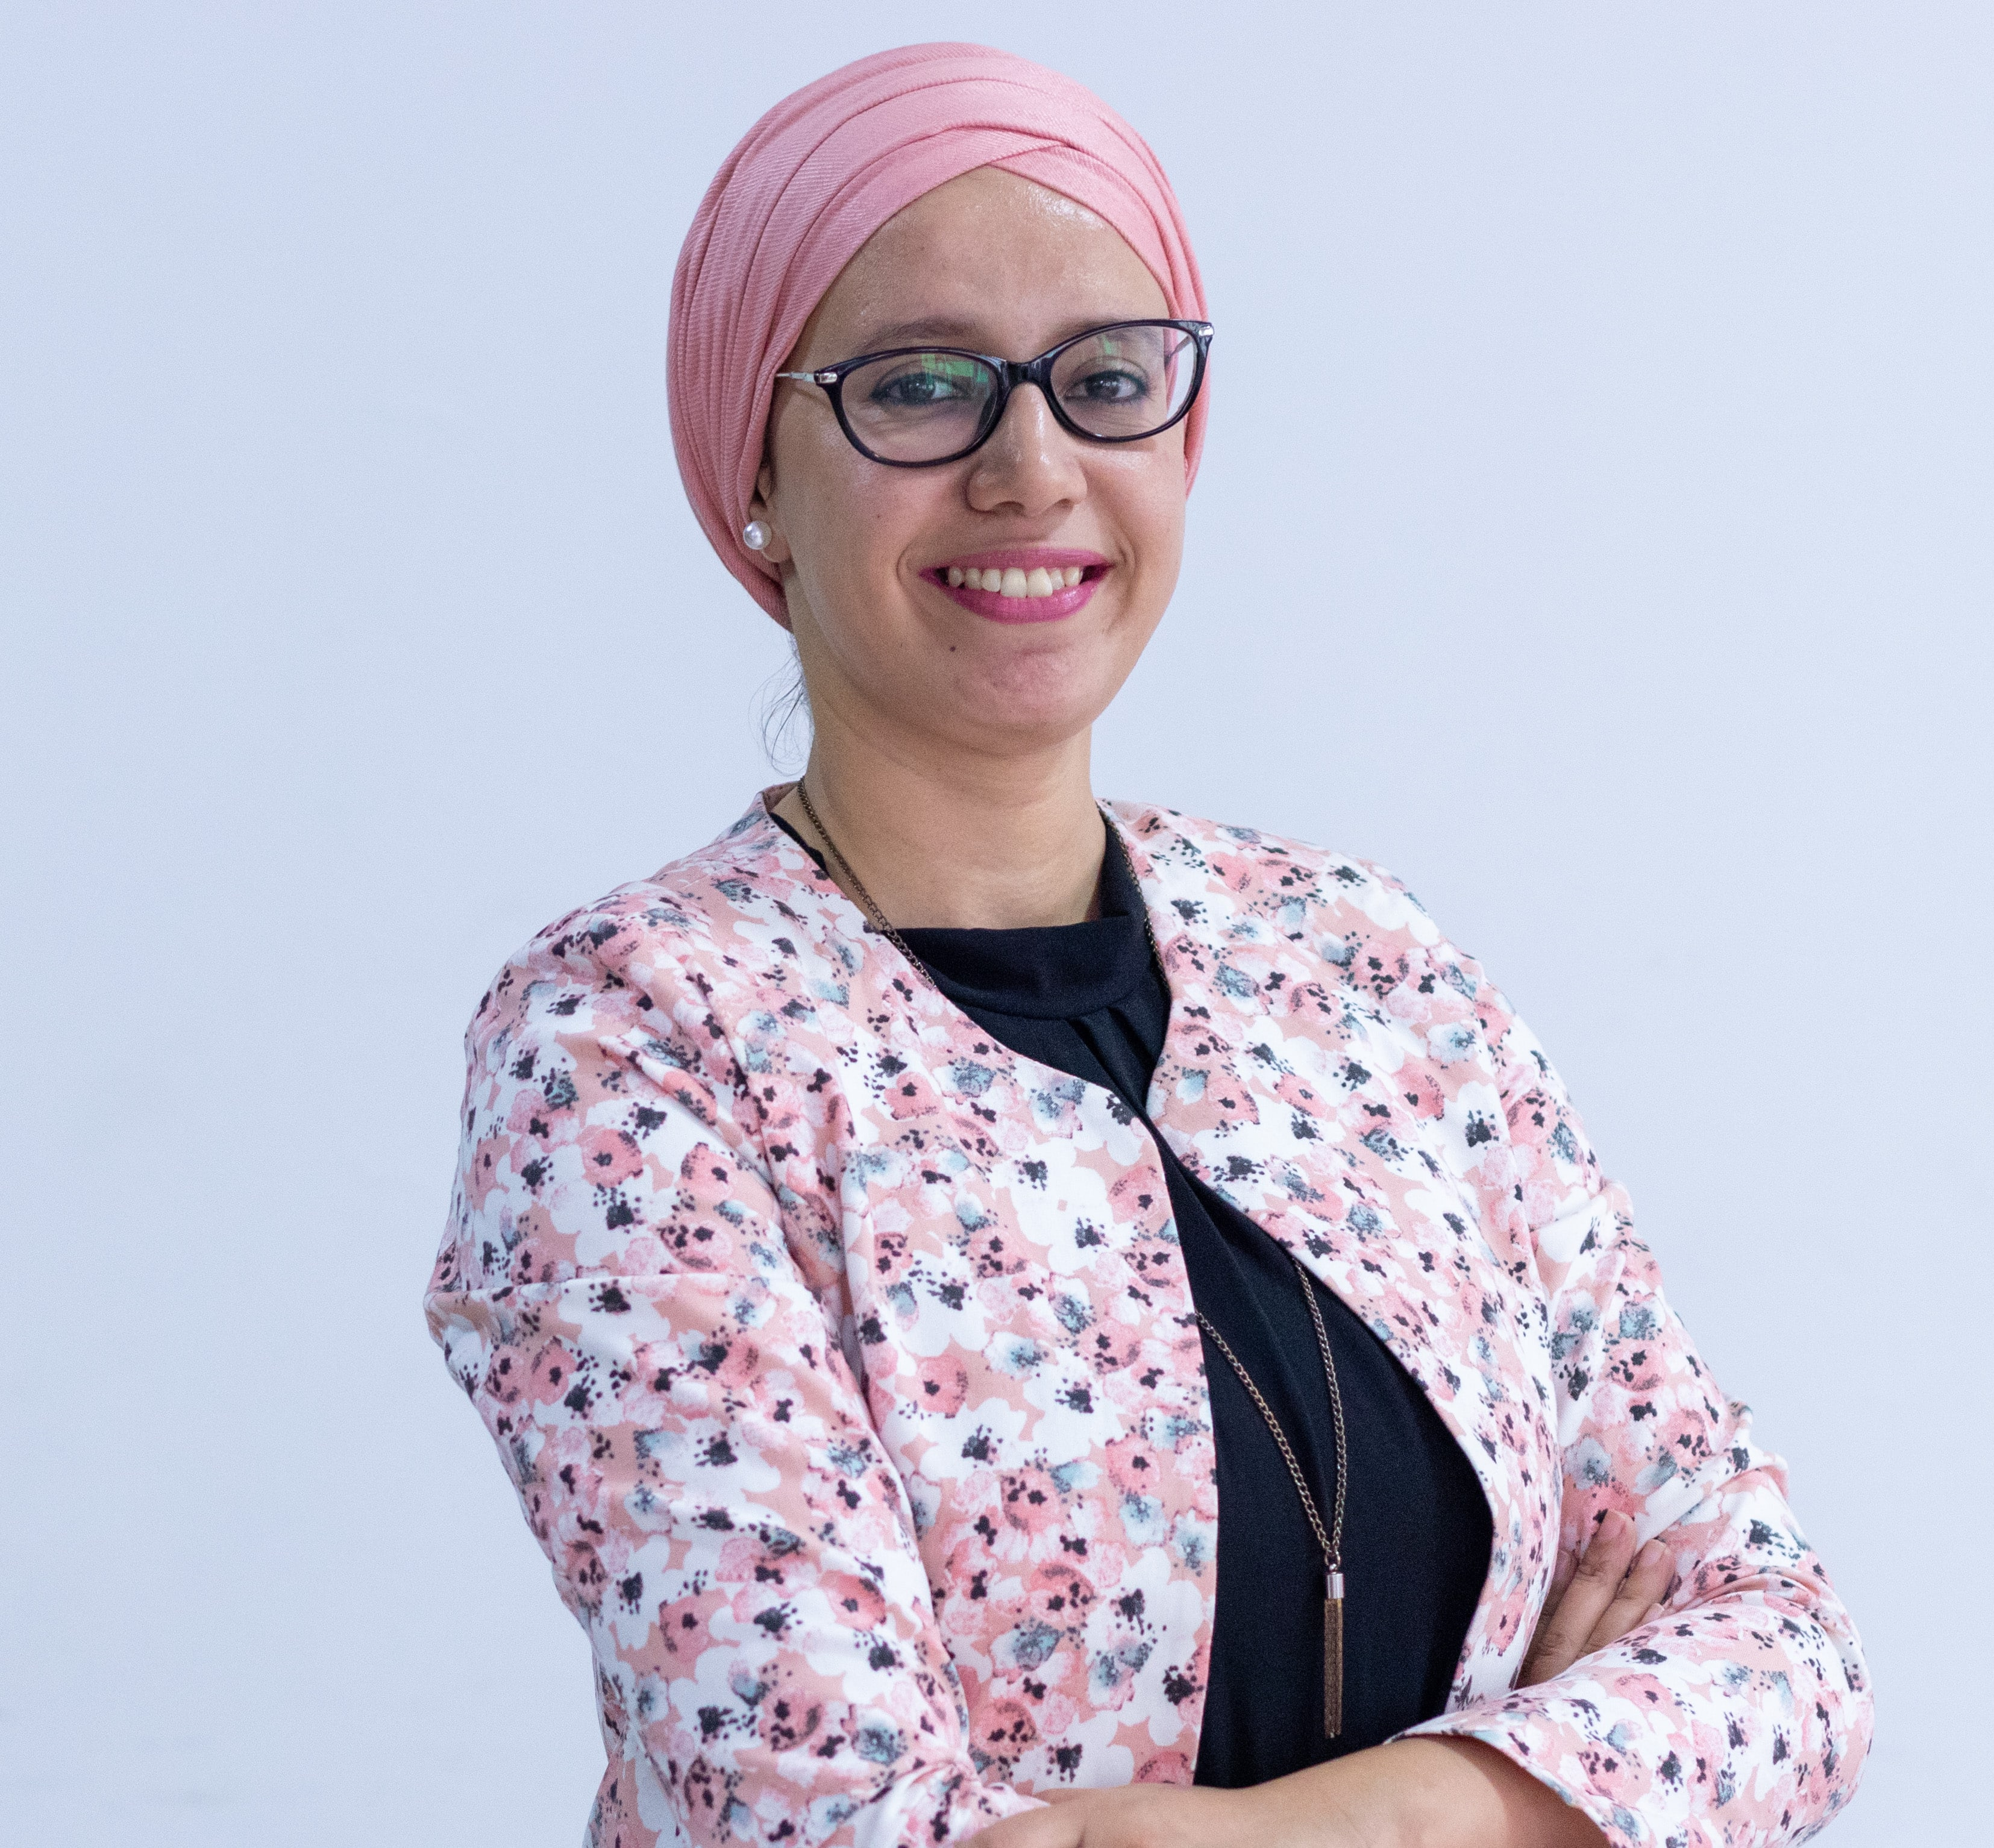 HIND AZELMAT, Responsable Communications